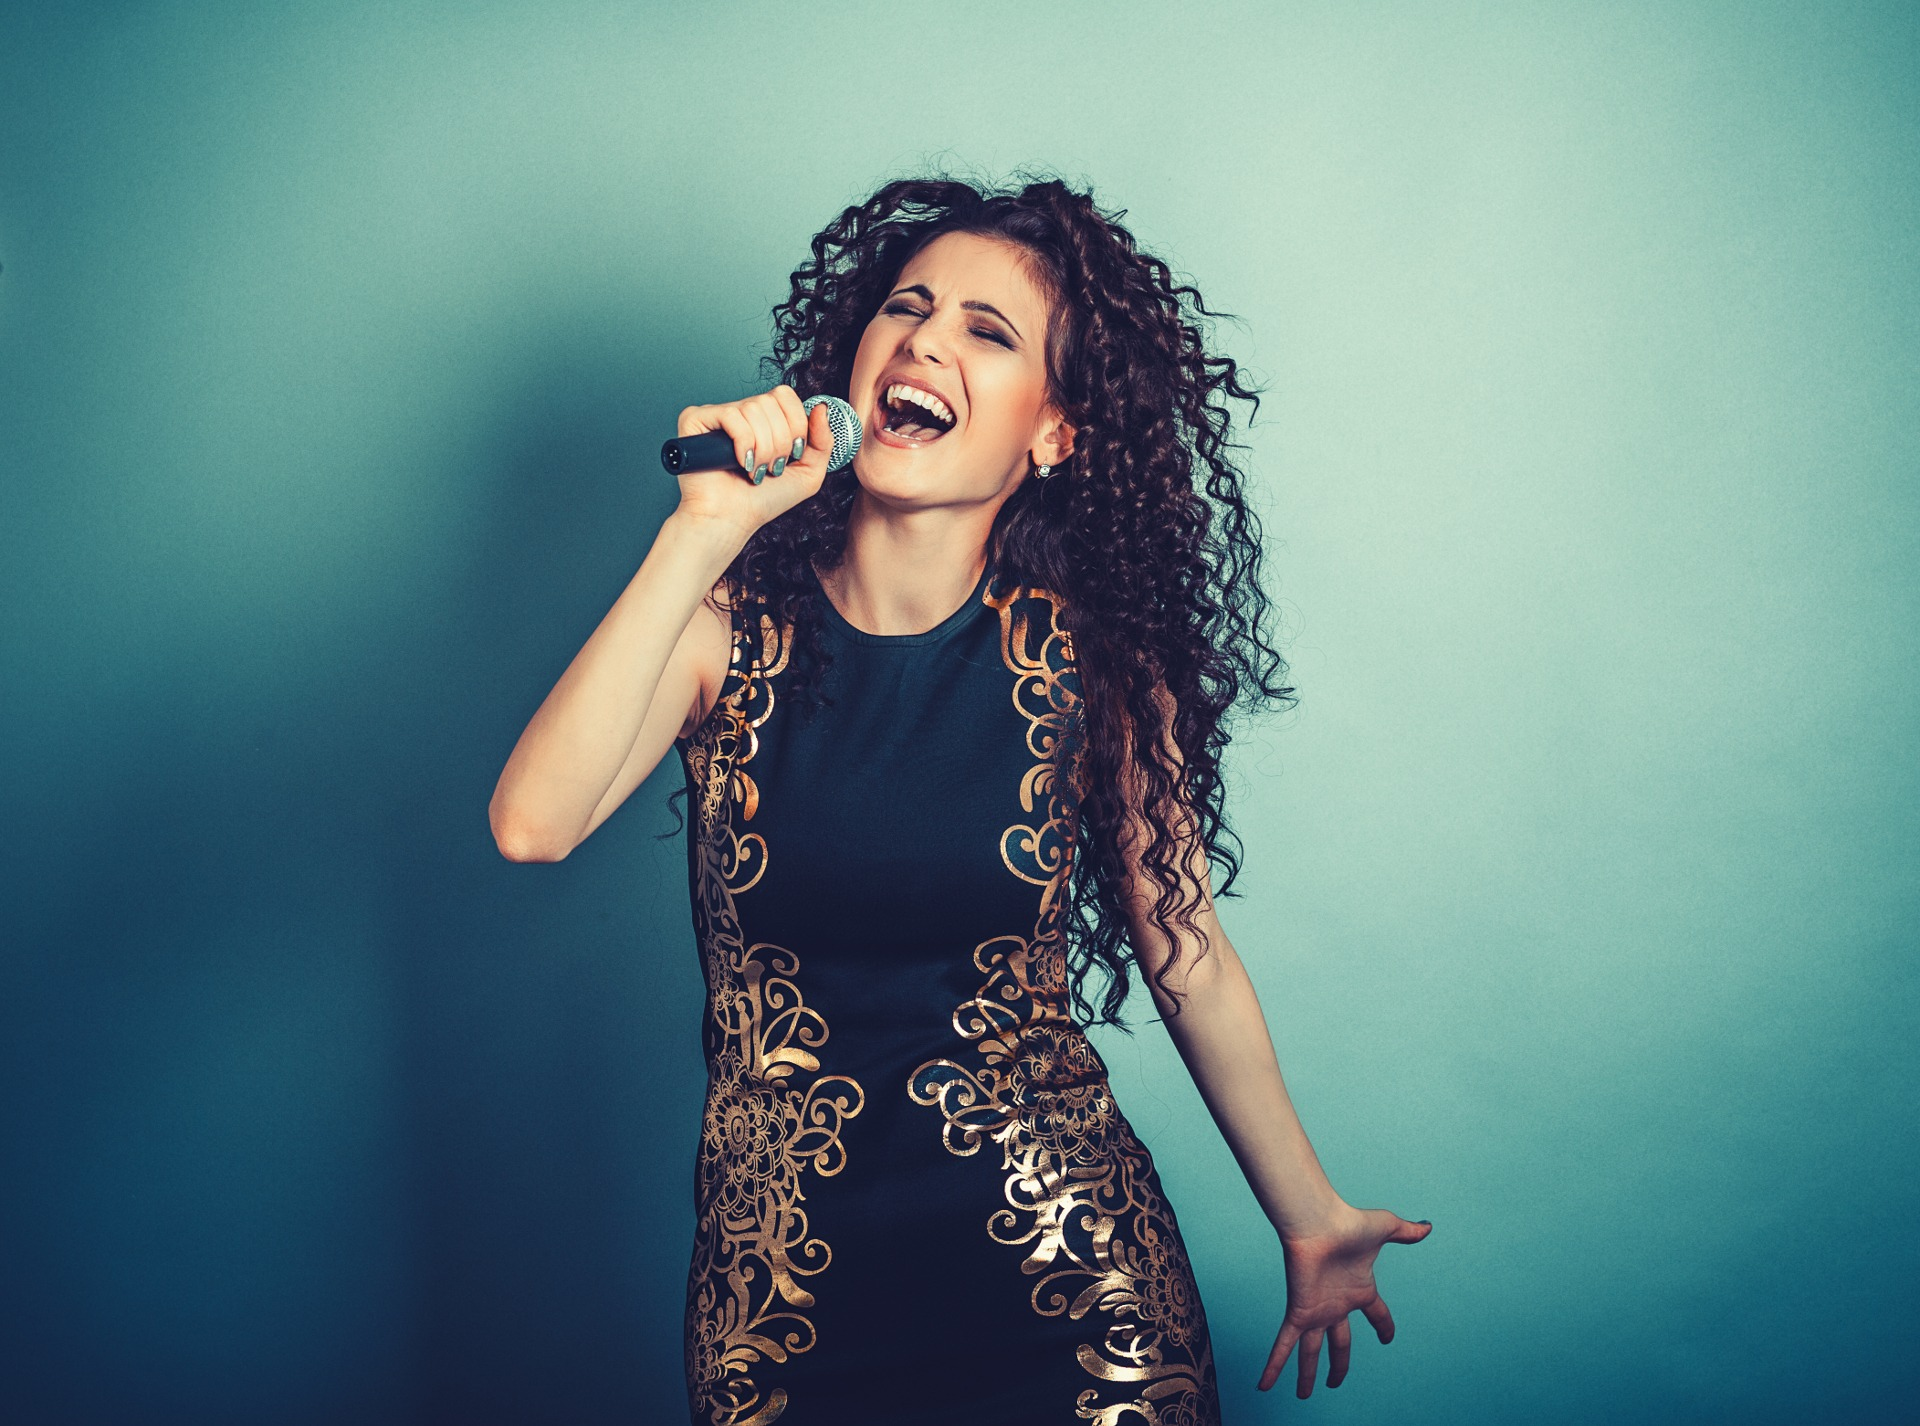 A singer uses her overexcitable voice